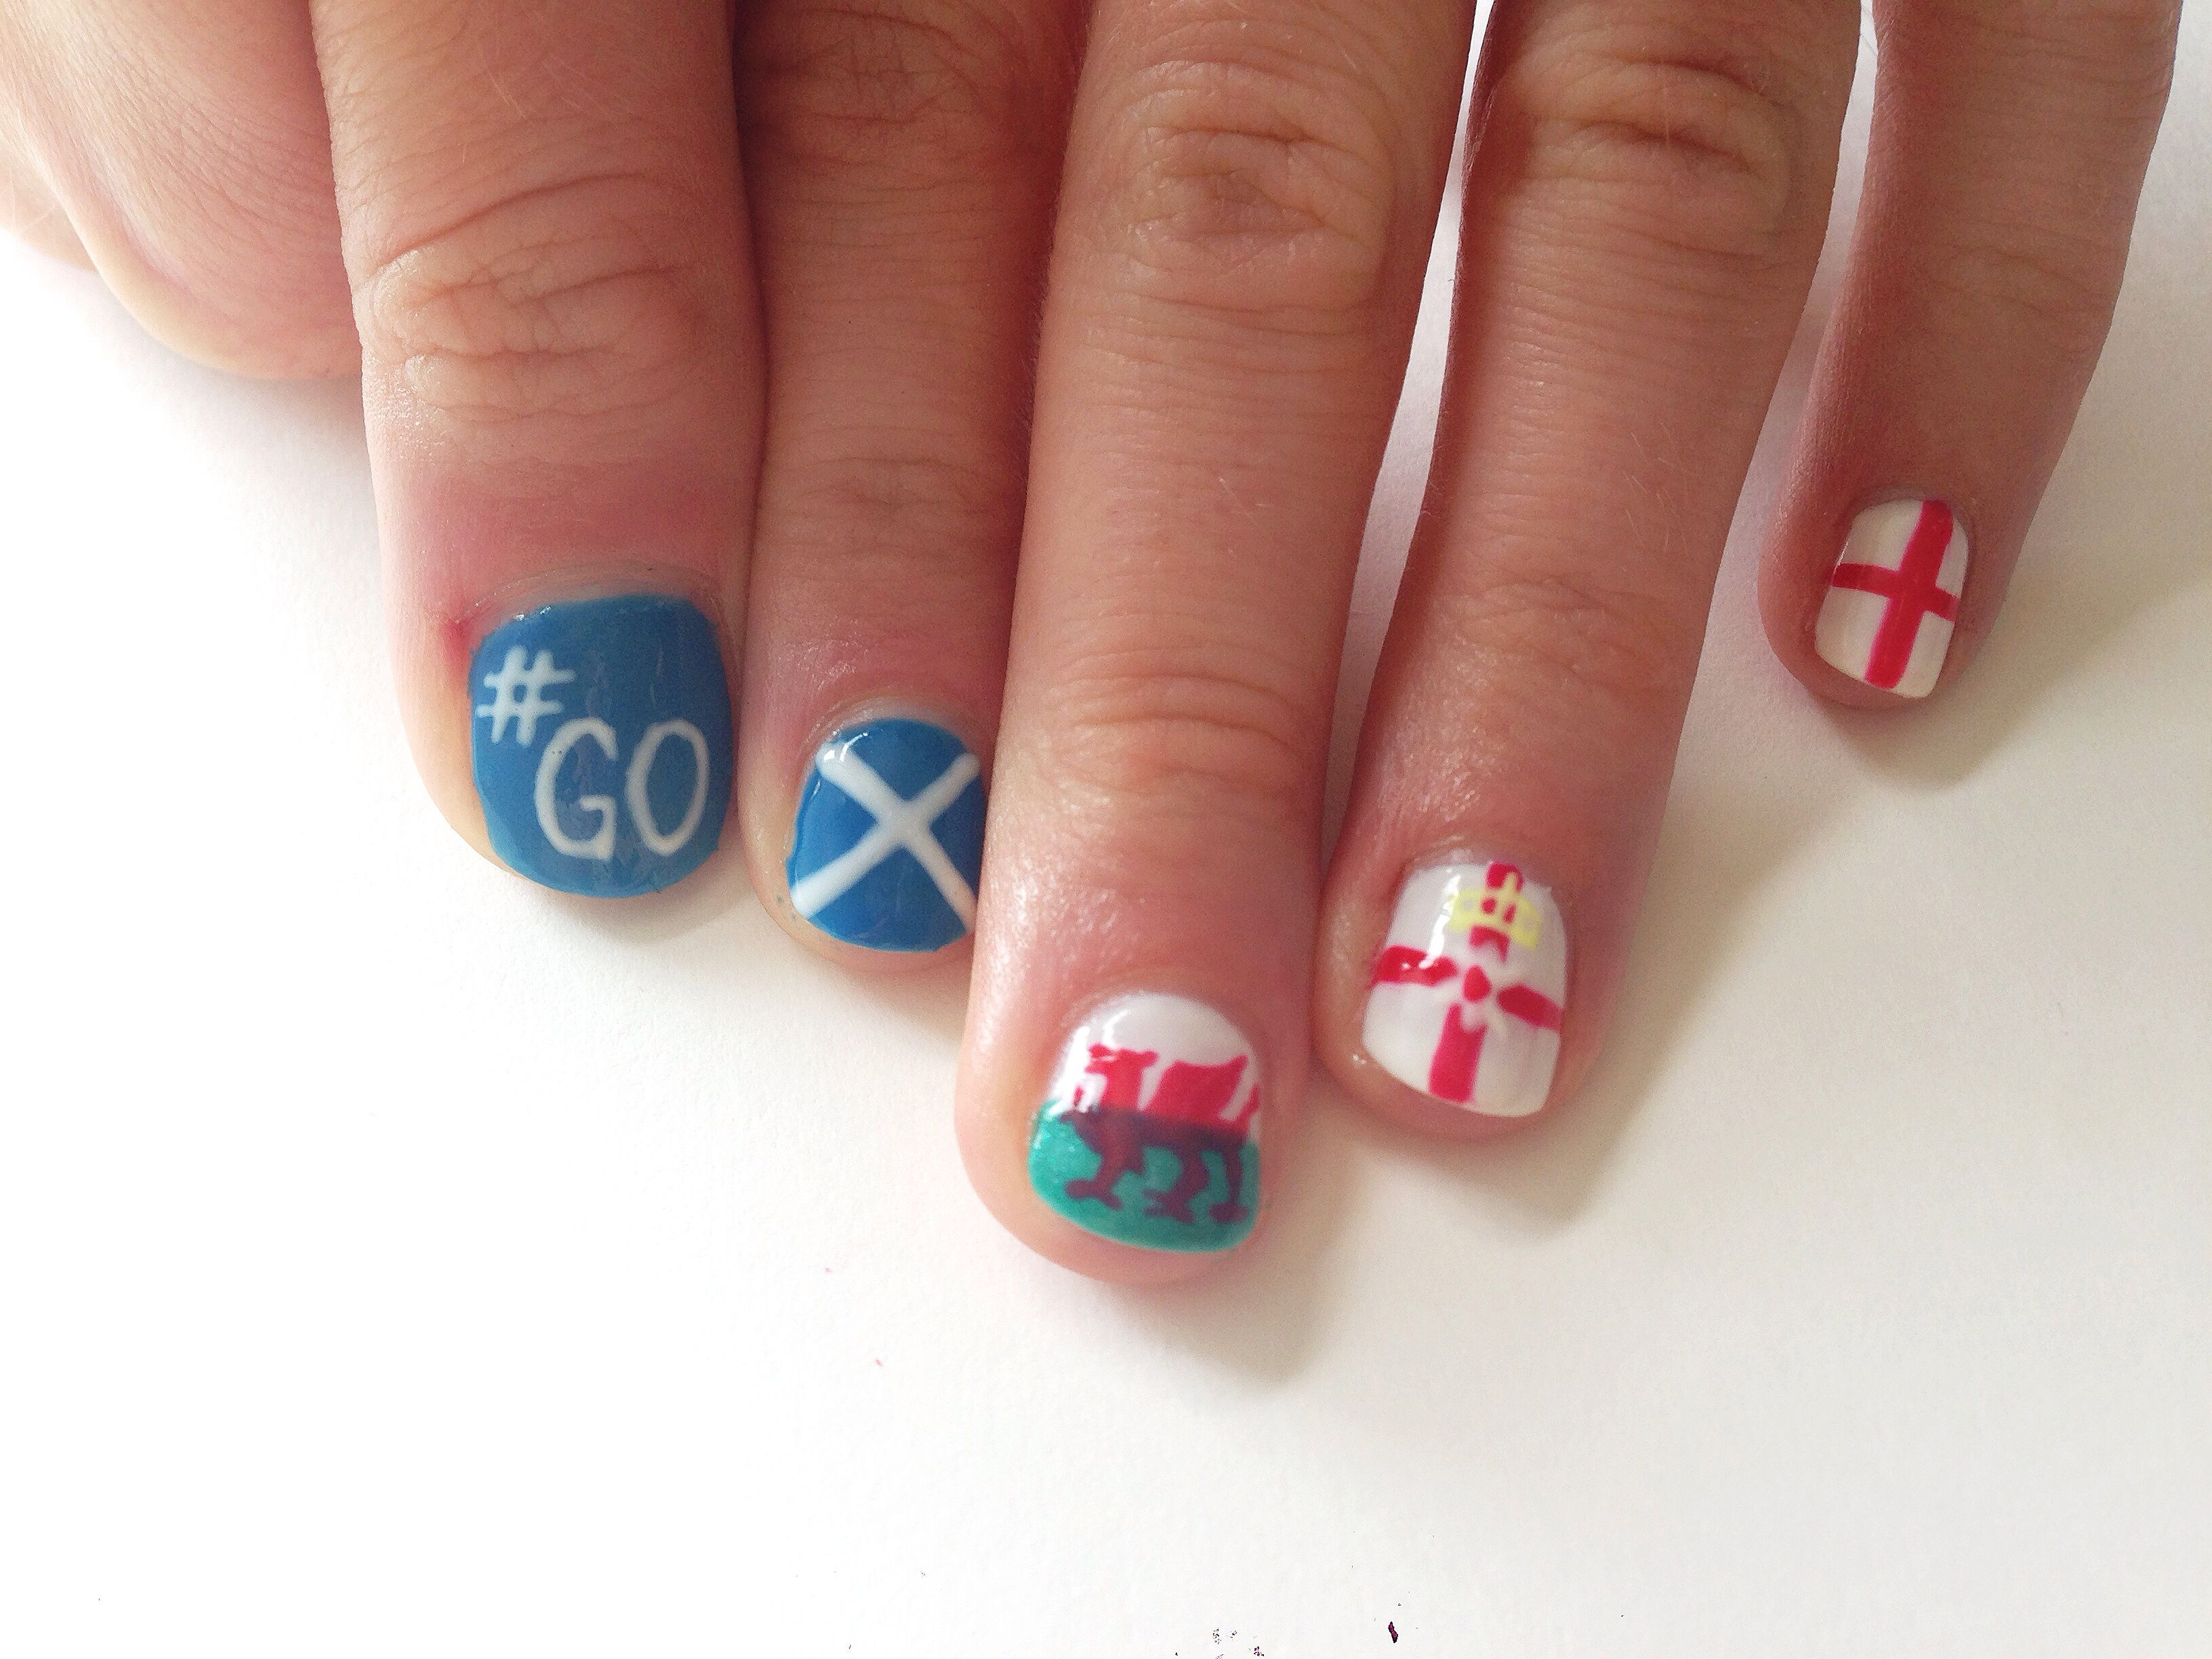 Commonwealth Games 2014 Nails | My Nail Art | Pinterest ...